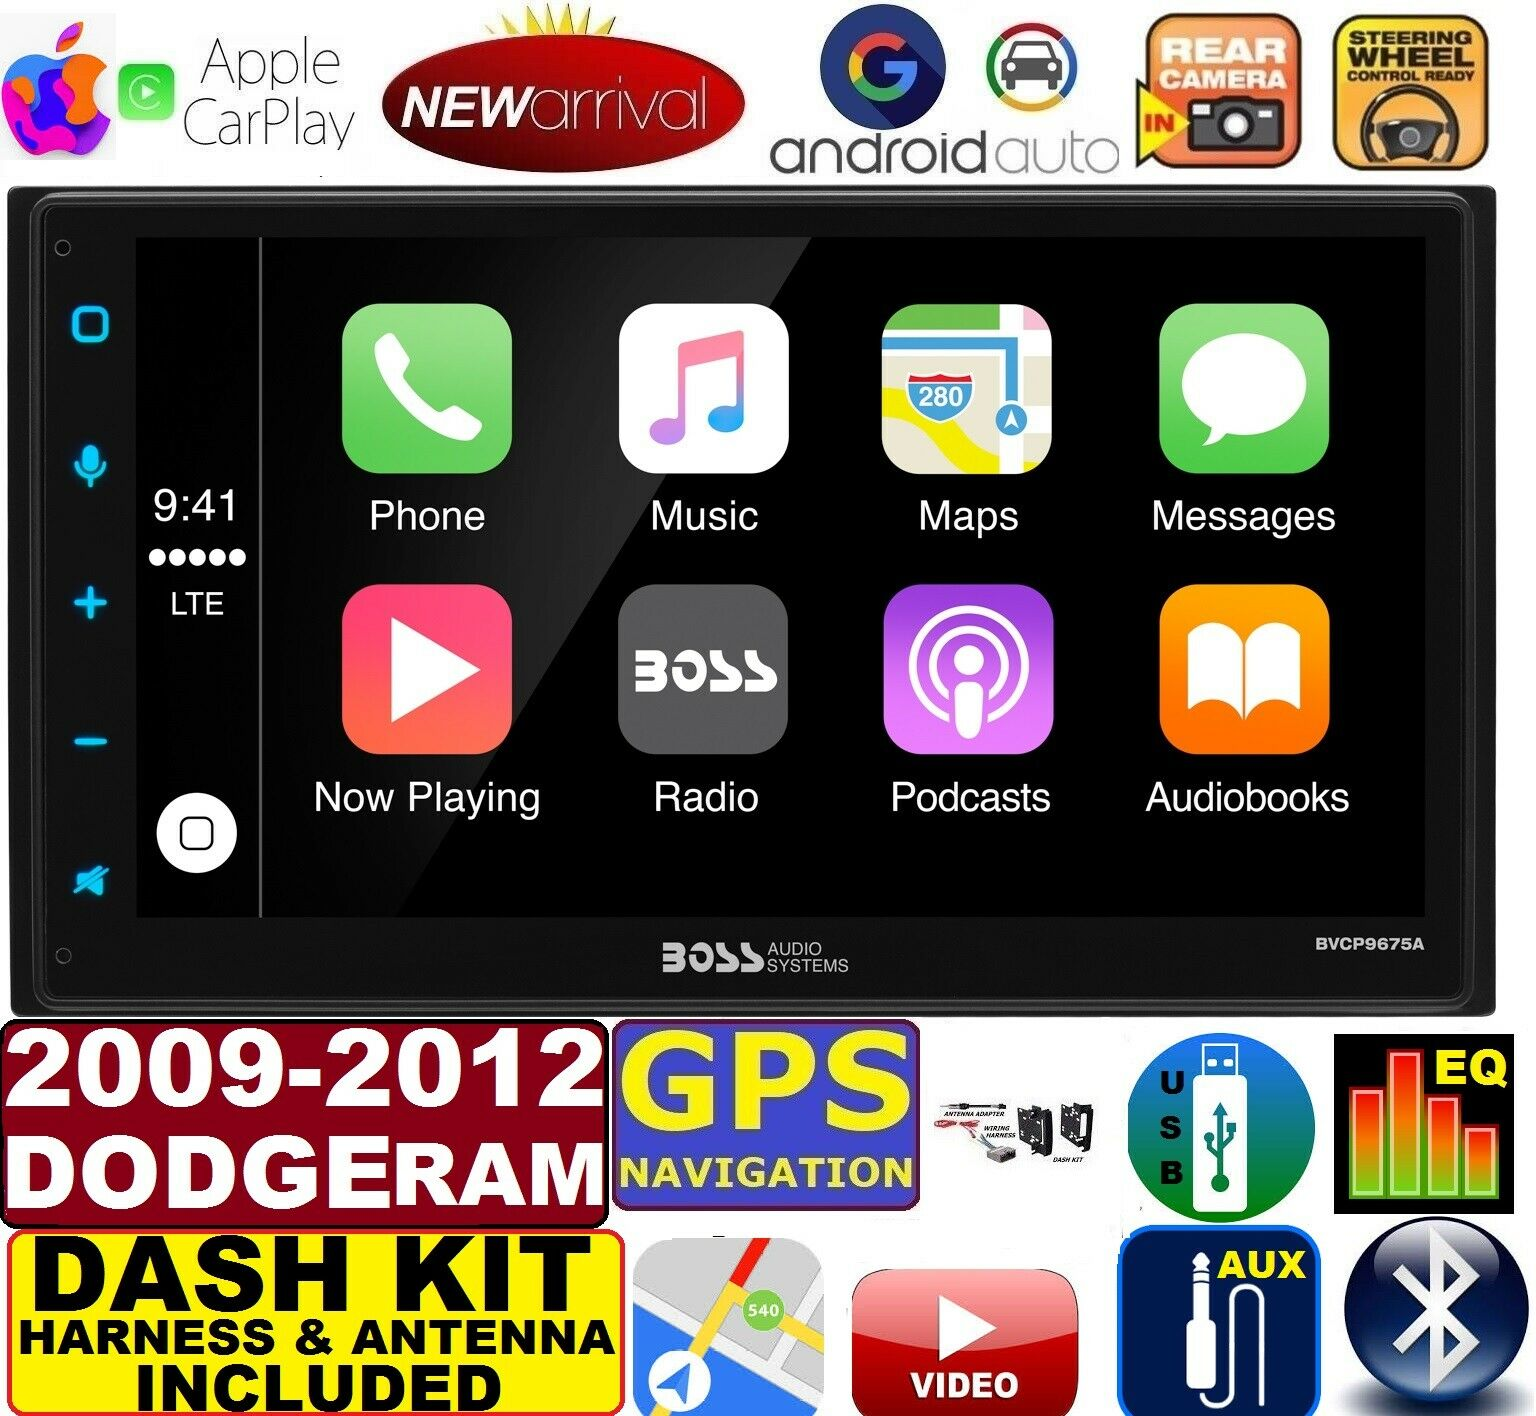 hight resolution of 2009 2012 dodge ram gps apple carplay navigation works with iphone am fm usb bluetooth car radio stereo pkg incl vehicle hardware dash kit